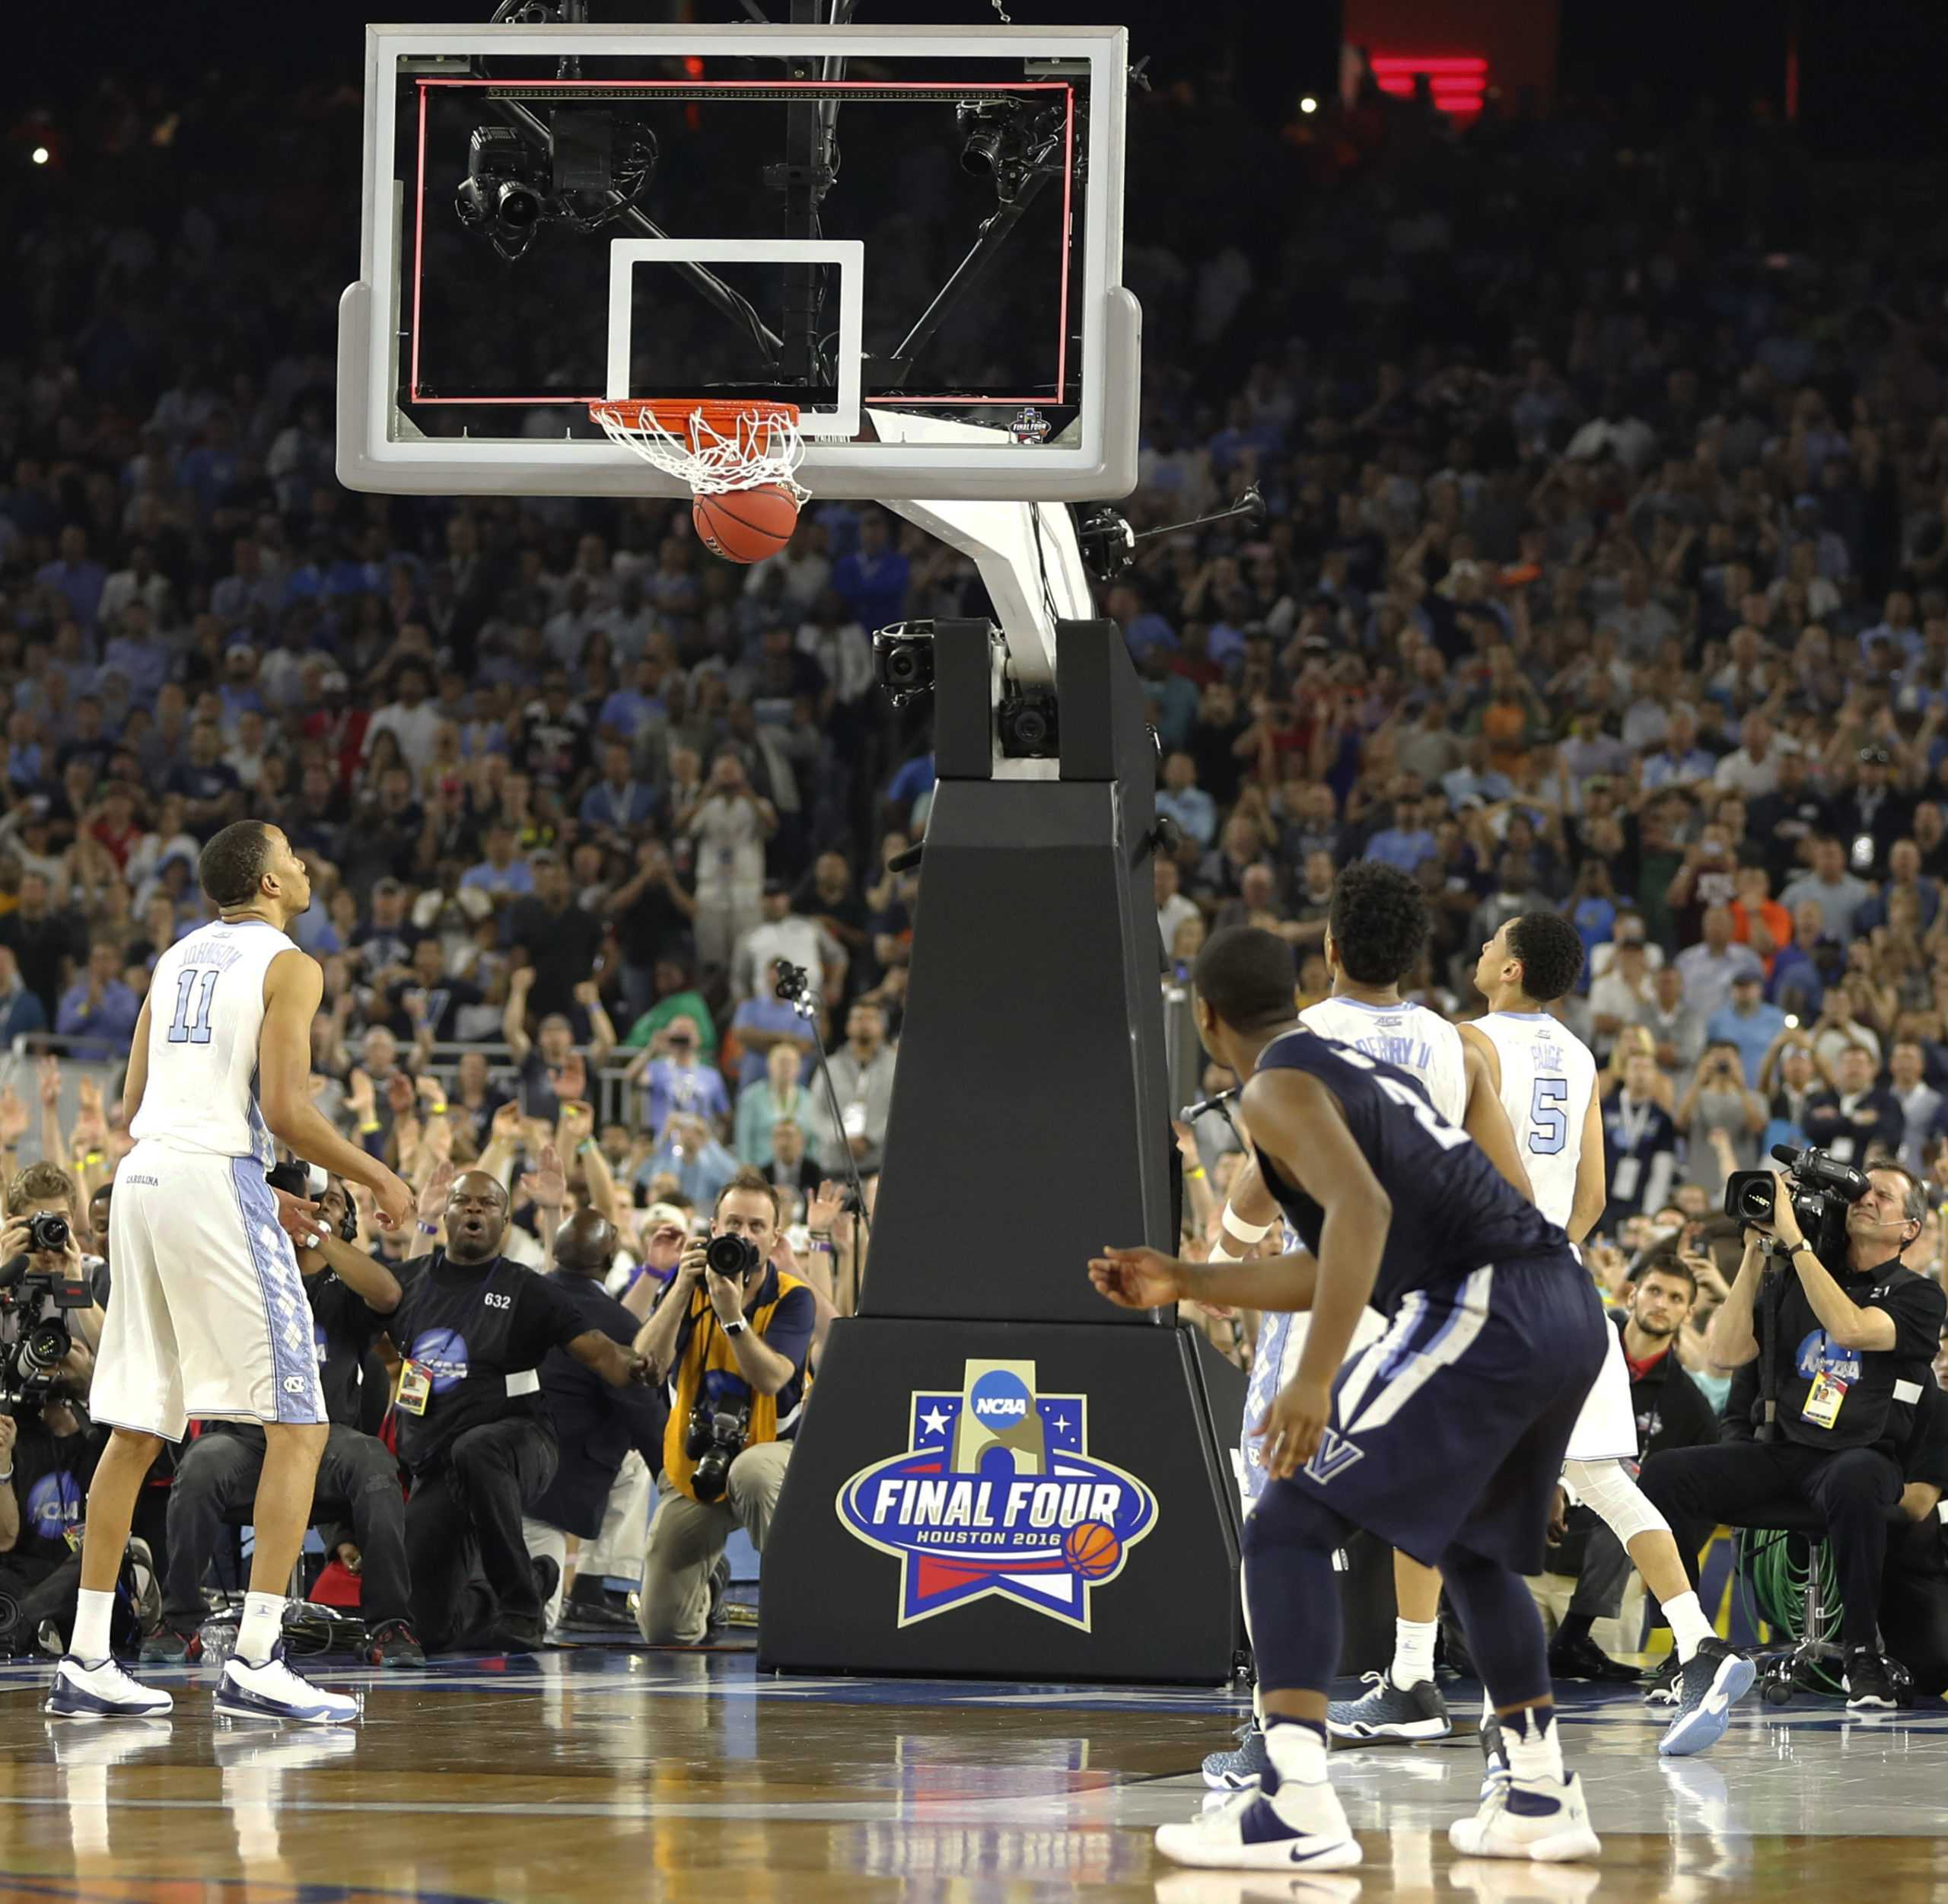 Villanova's Kris Jenkins (2) watches his game winning three point basket at the closing seconds of the NCAA Final Four tournament.